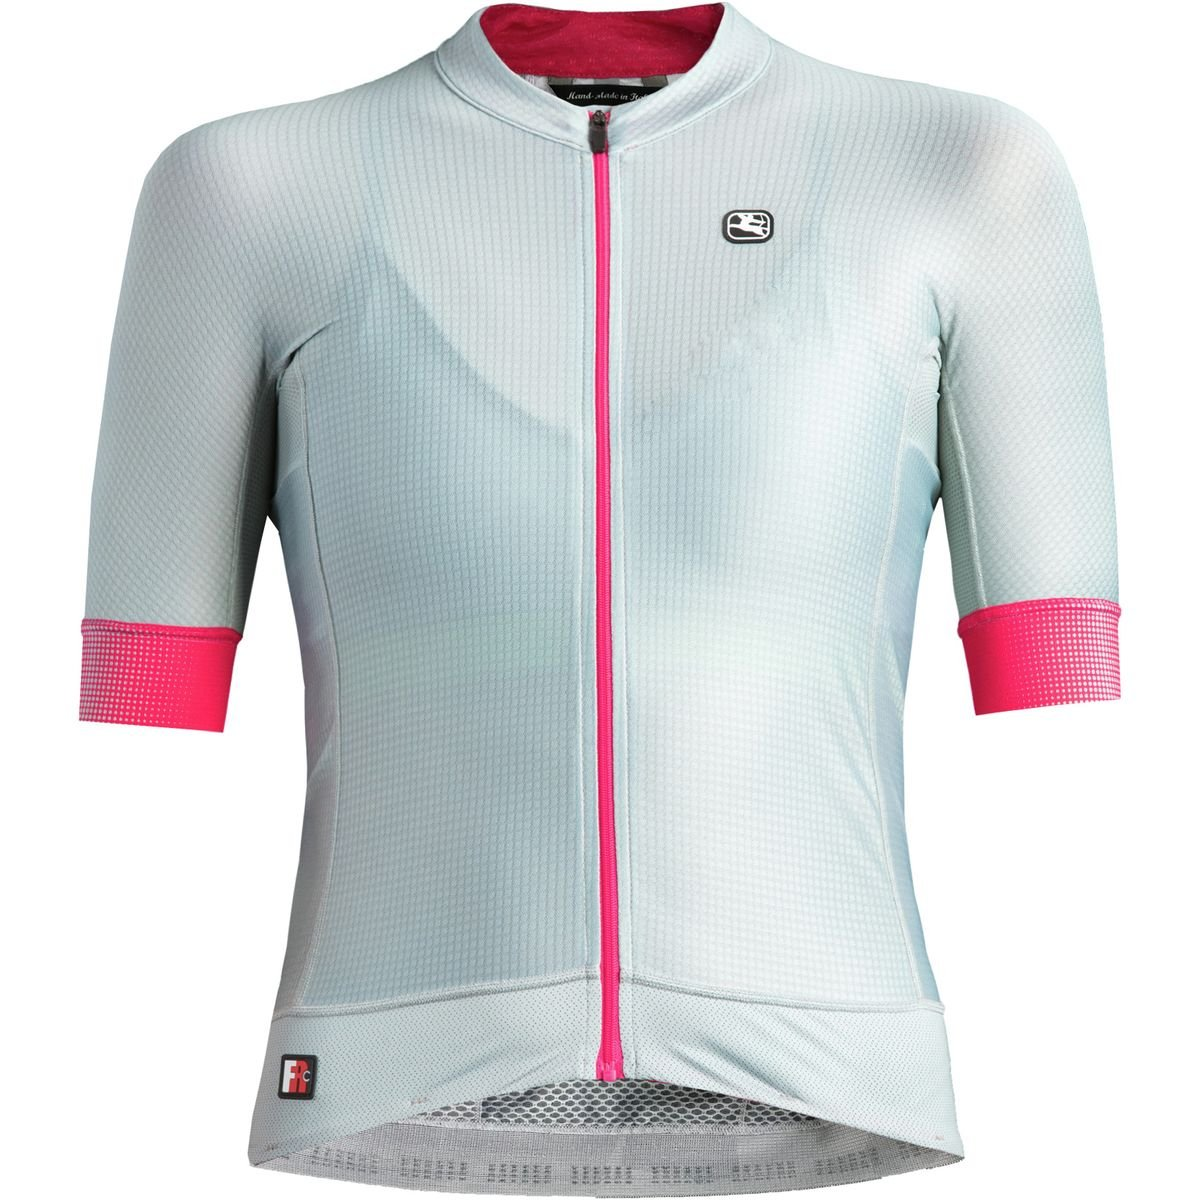 Giordana FR-C Pro Short-Sleeve Jersey - Women's Cool Grey/Pink, XS